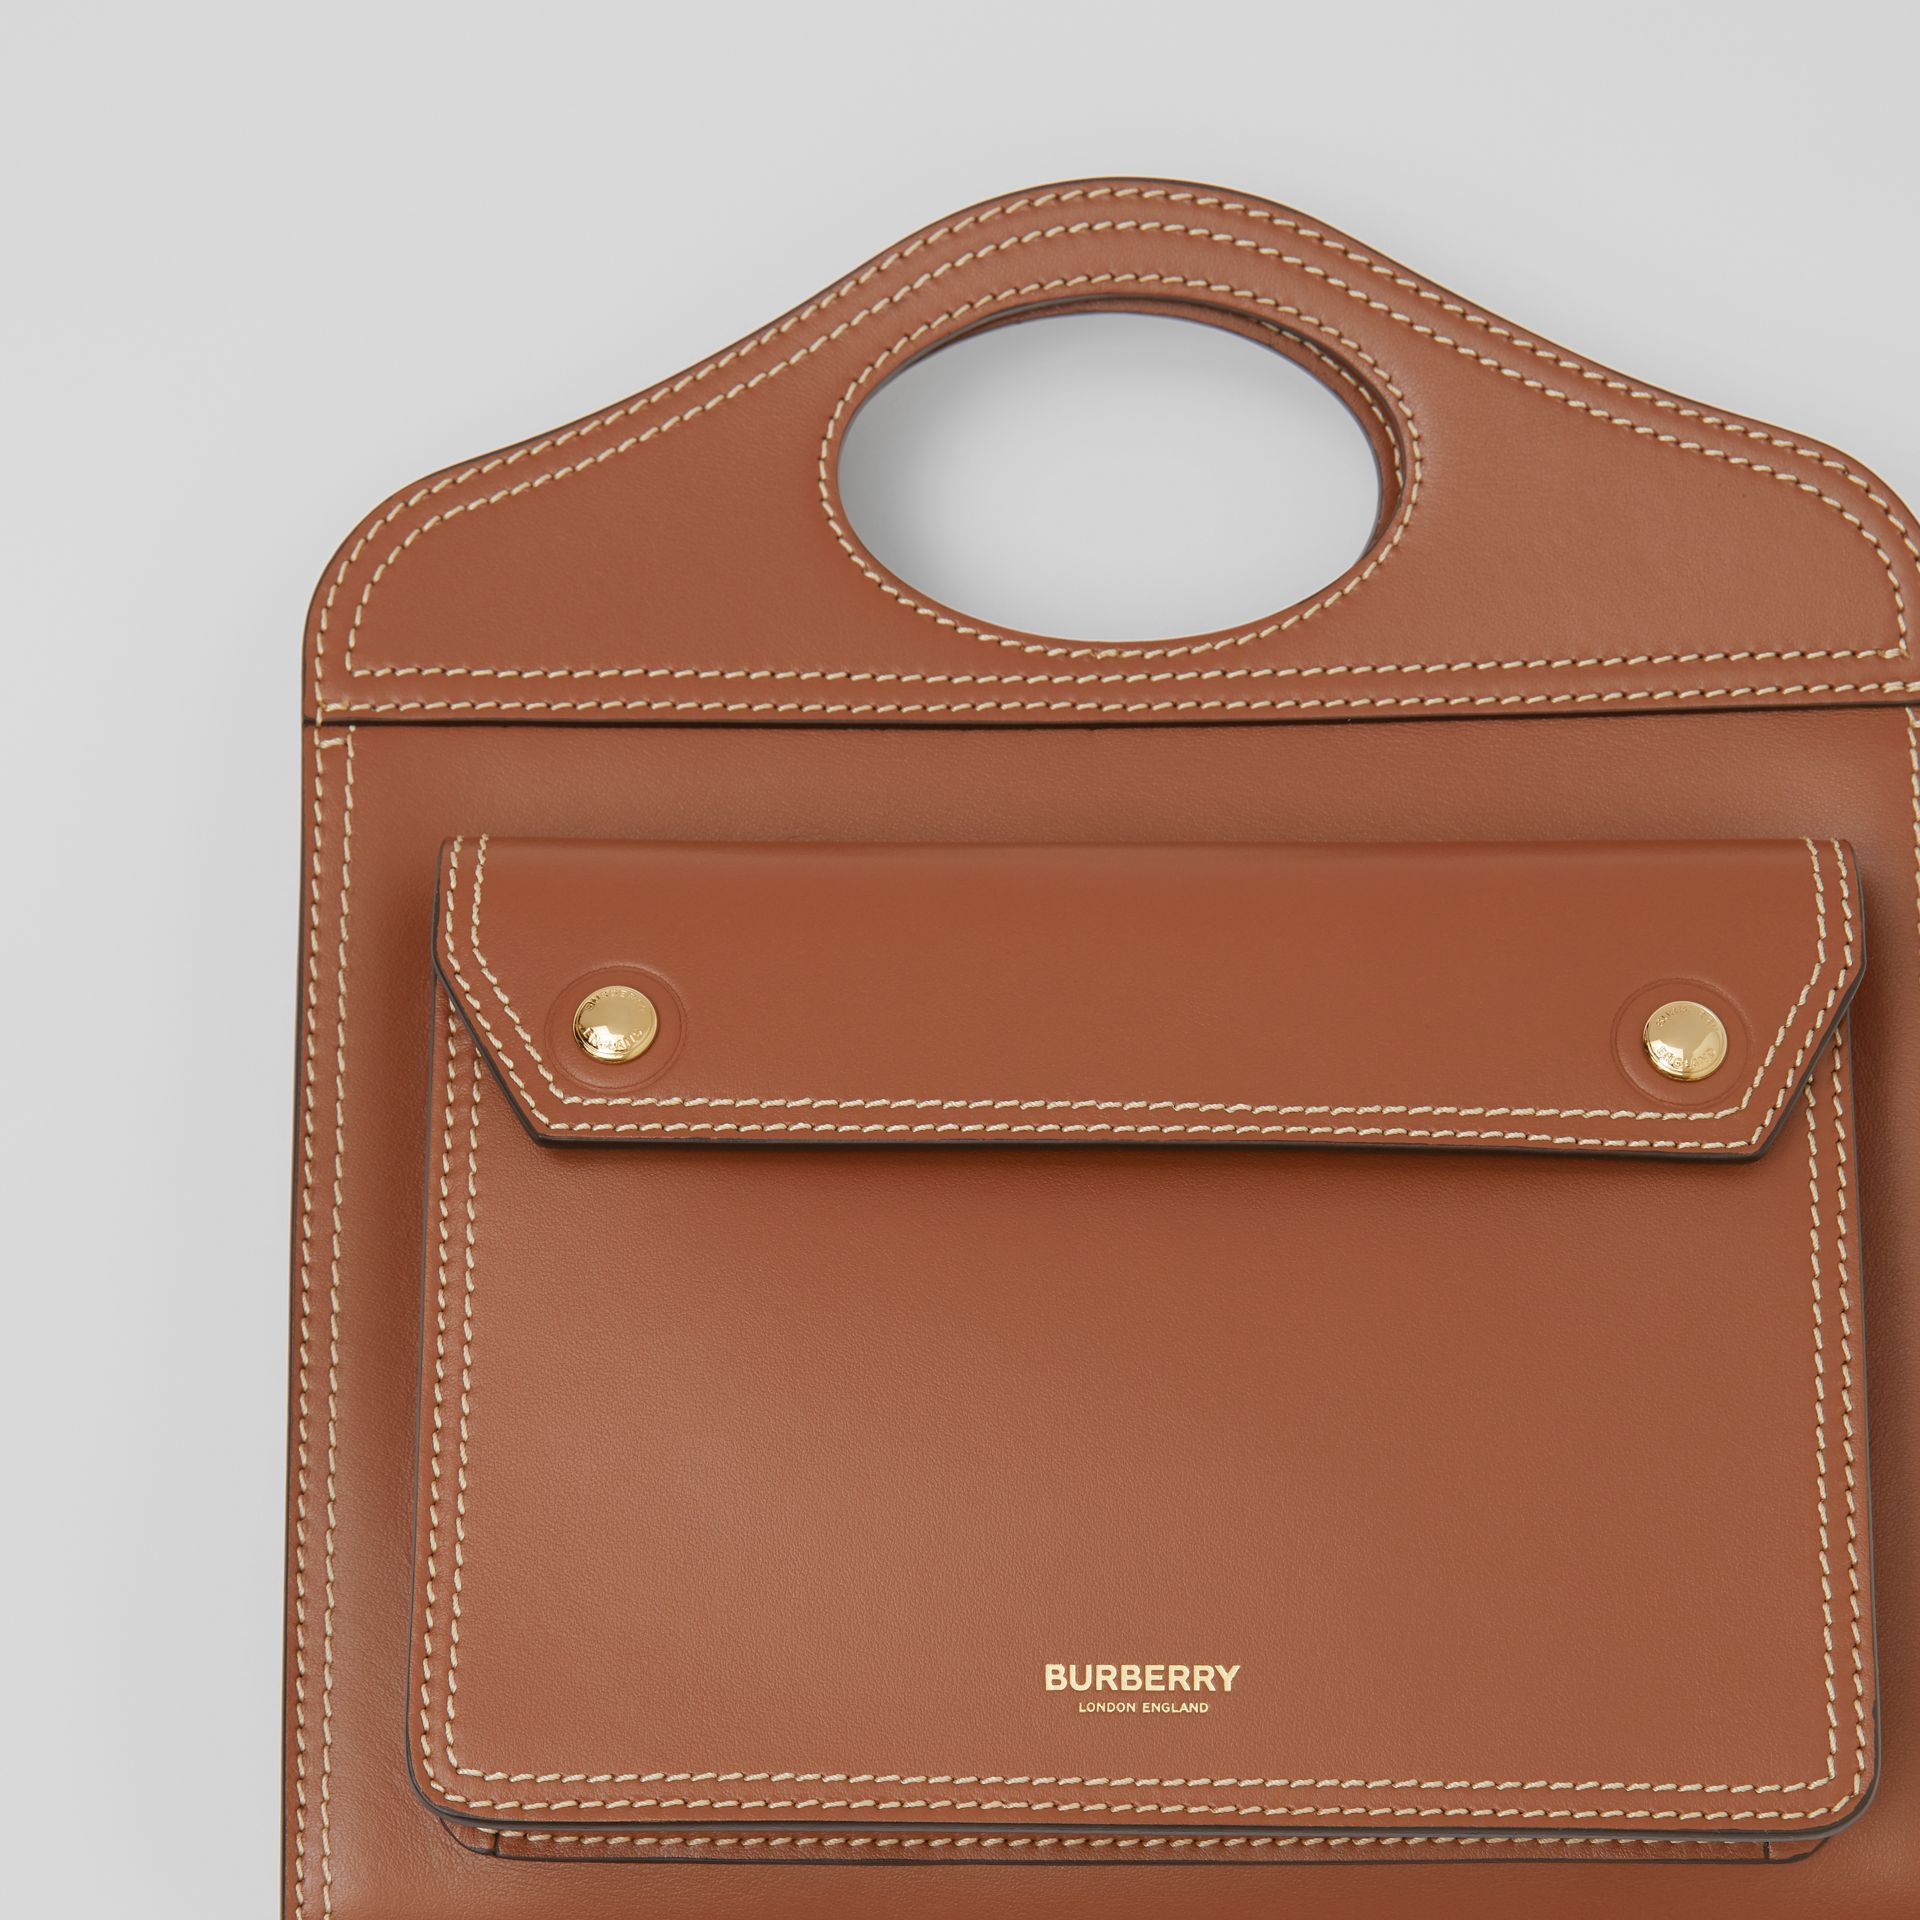 Mini Topstitch Detail Leather Pocket Bag in Malt Brown - Women | Burberry Hong Kong - gallery image 1